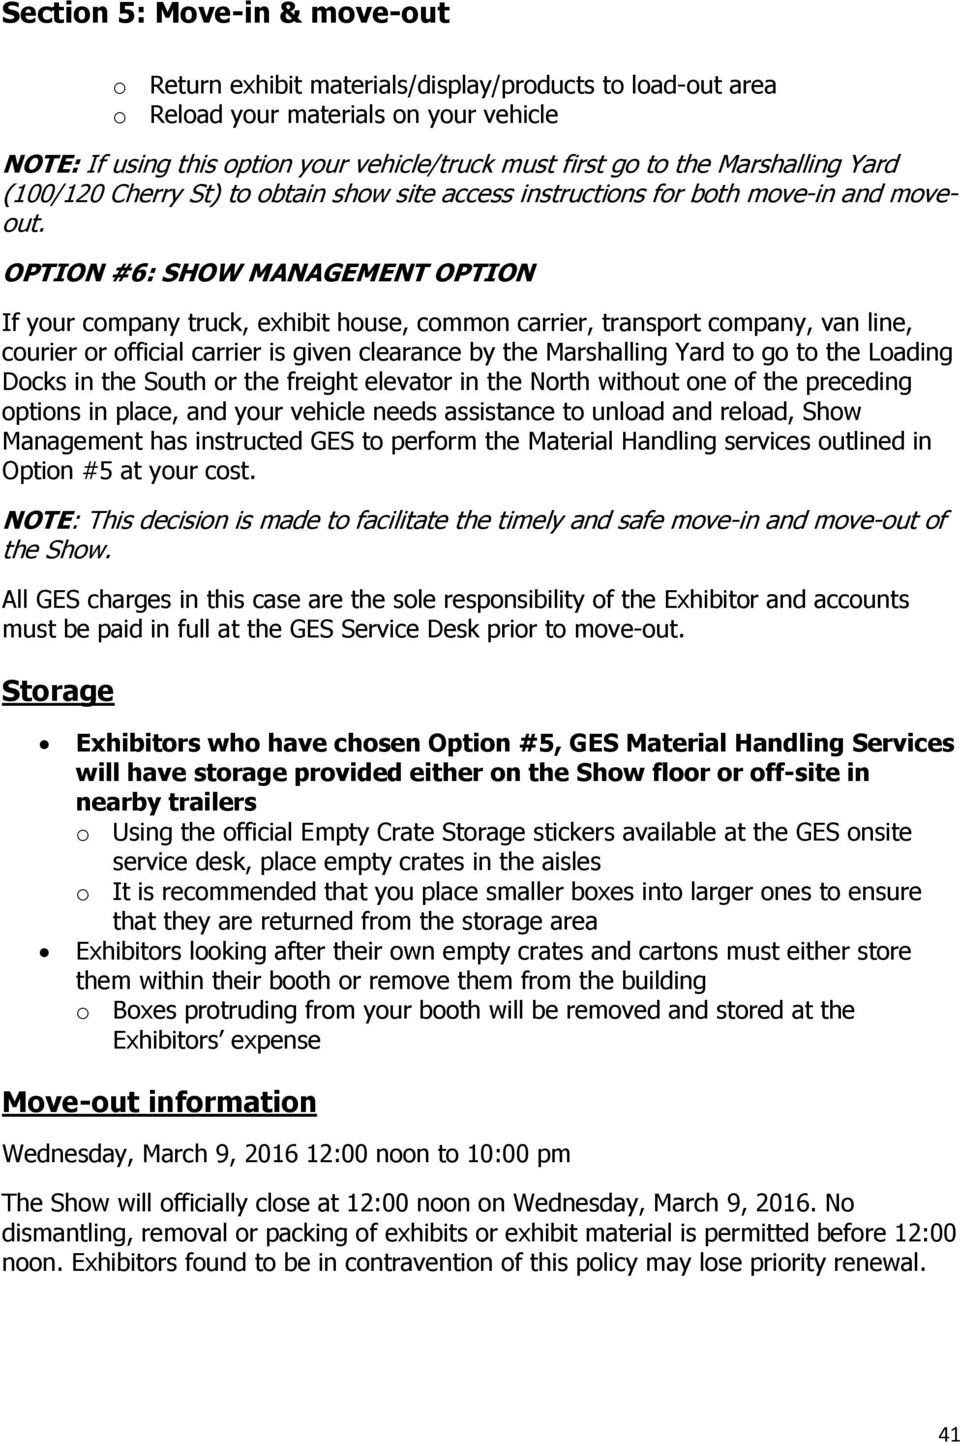 OPTION #6: SHOW MANAGEMENT OPTION If your company truck, exhibit house, common carrier, transport company, van line, courier or official carrier is given clearance by the Marshalling Yard to go to